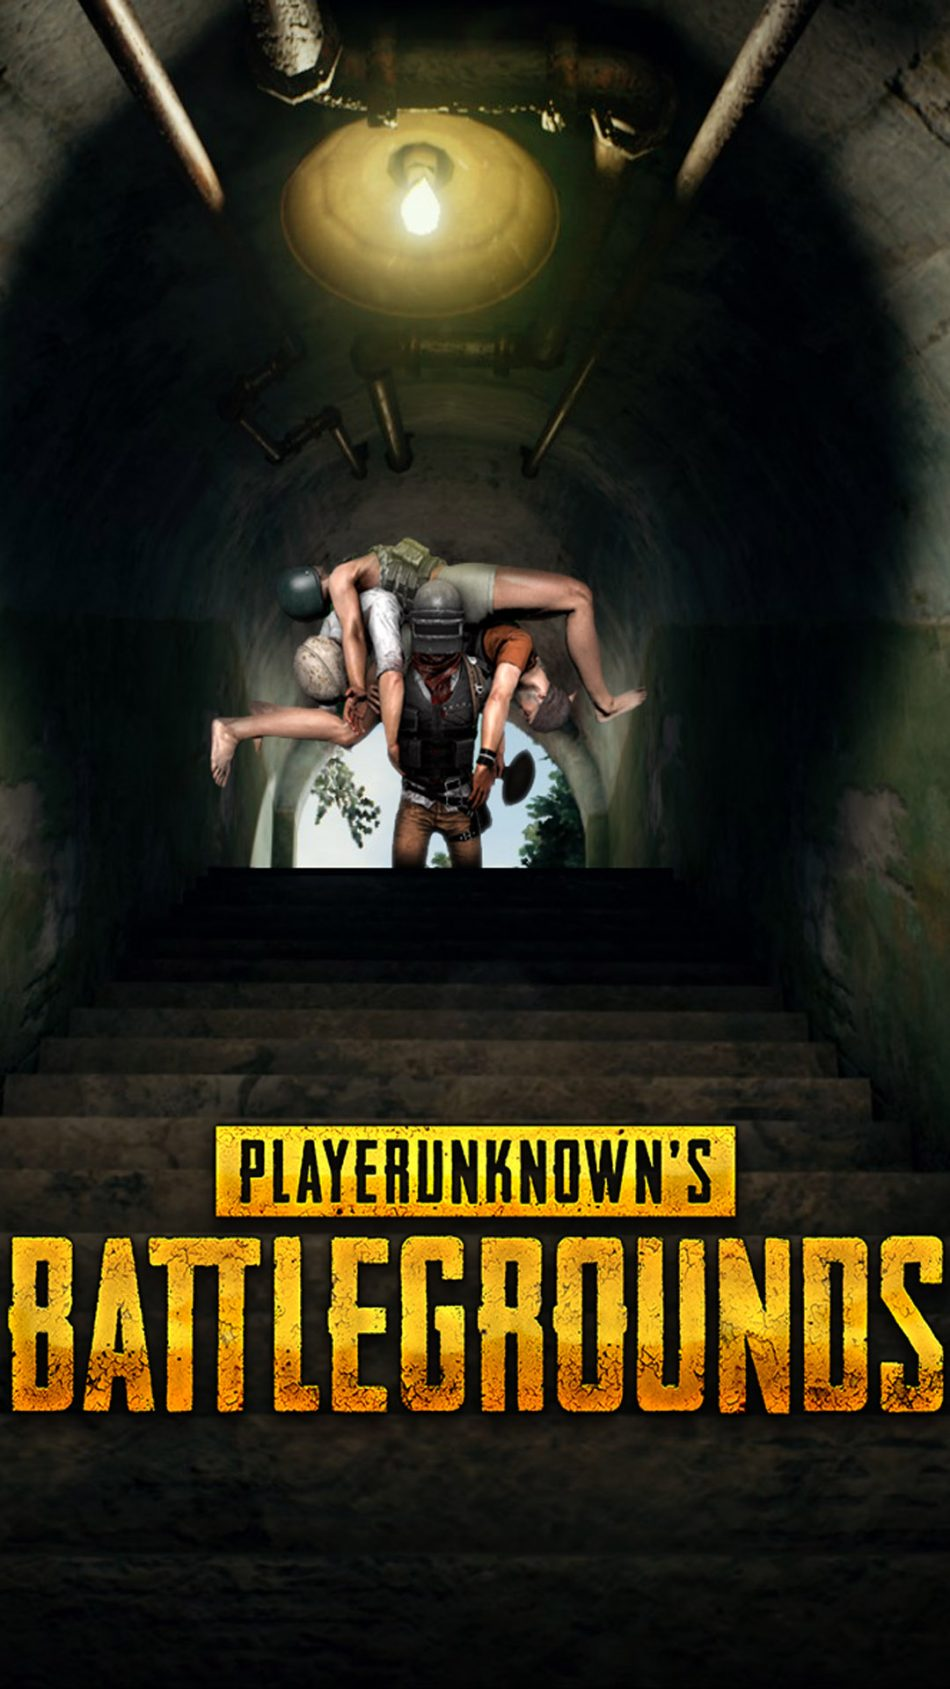 Download Saving Teammates Playerunknown S Battlegrounds Pubg Free